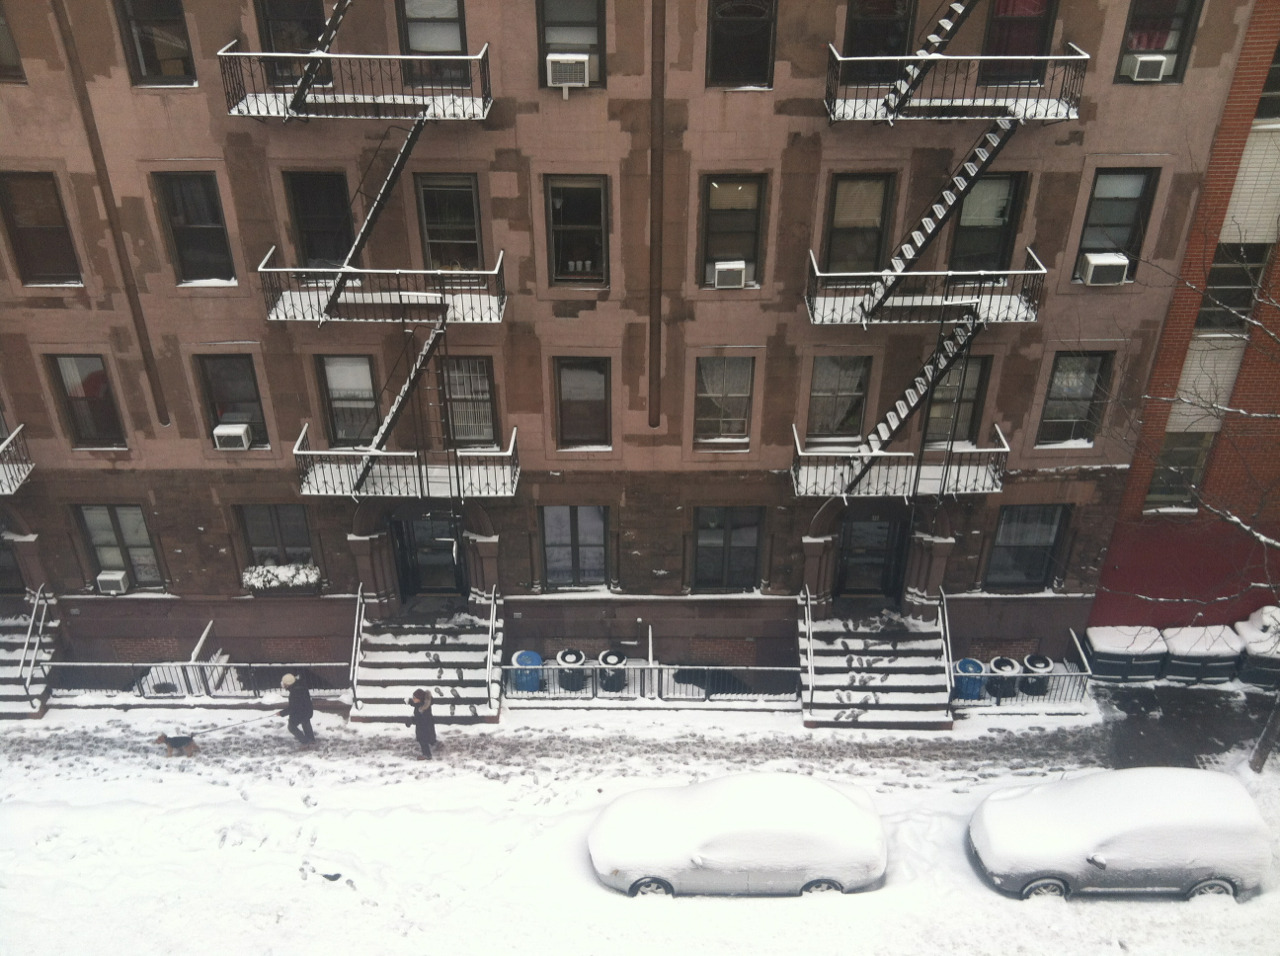 E 13th St this morning